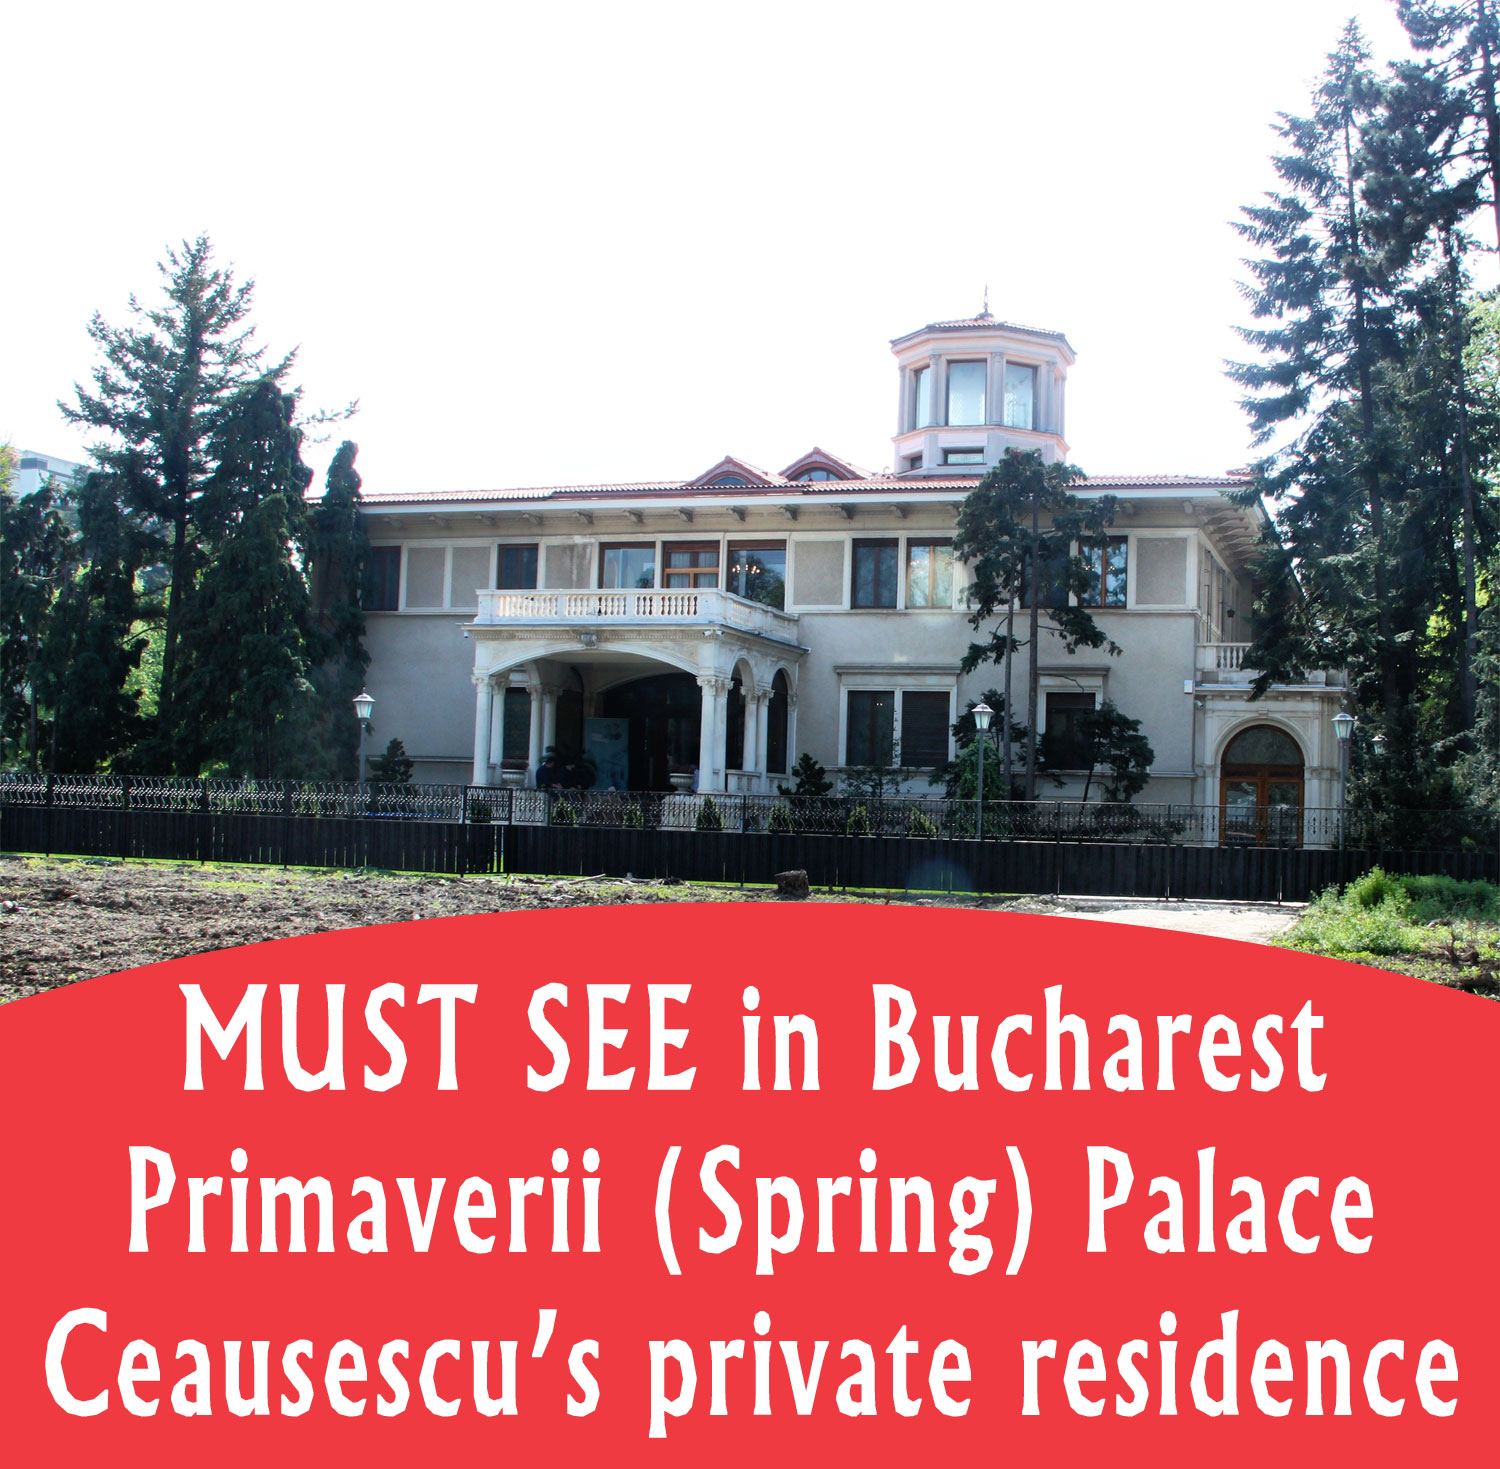 A new MUST SEE landmark in Bucharest: Spring Palace, Ceausescu's private residence